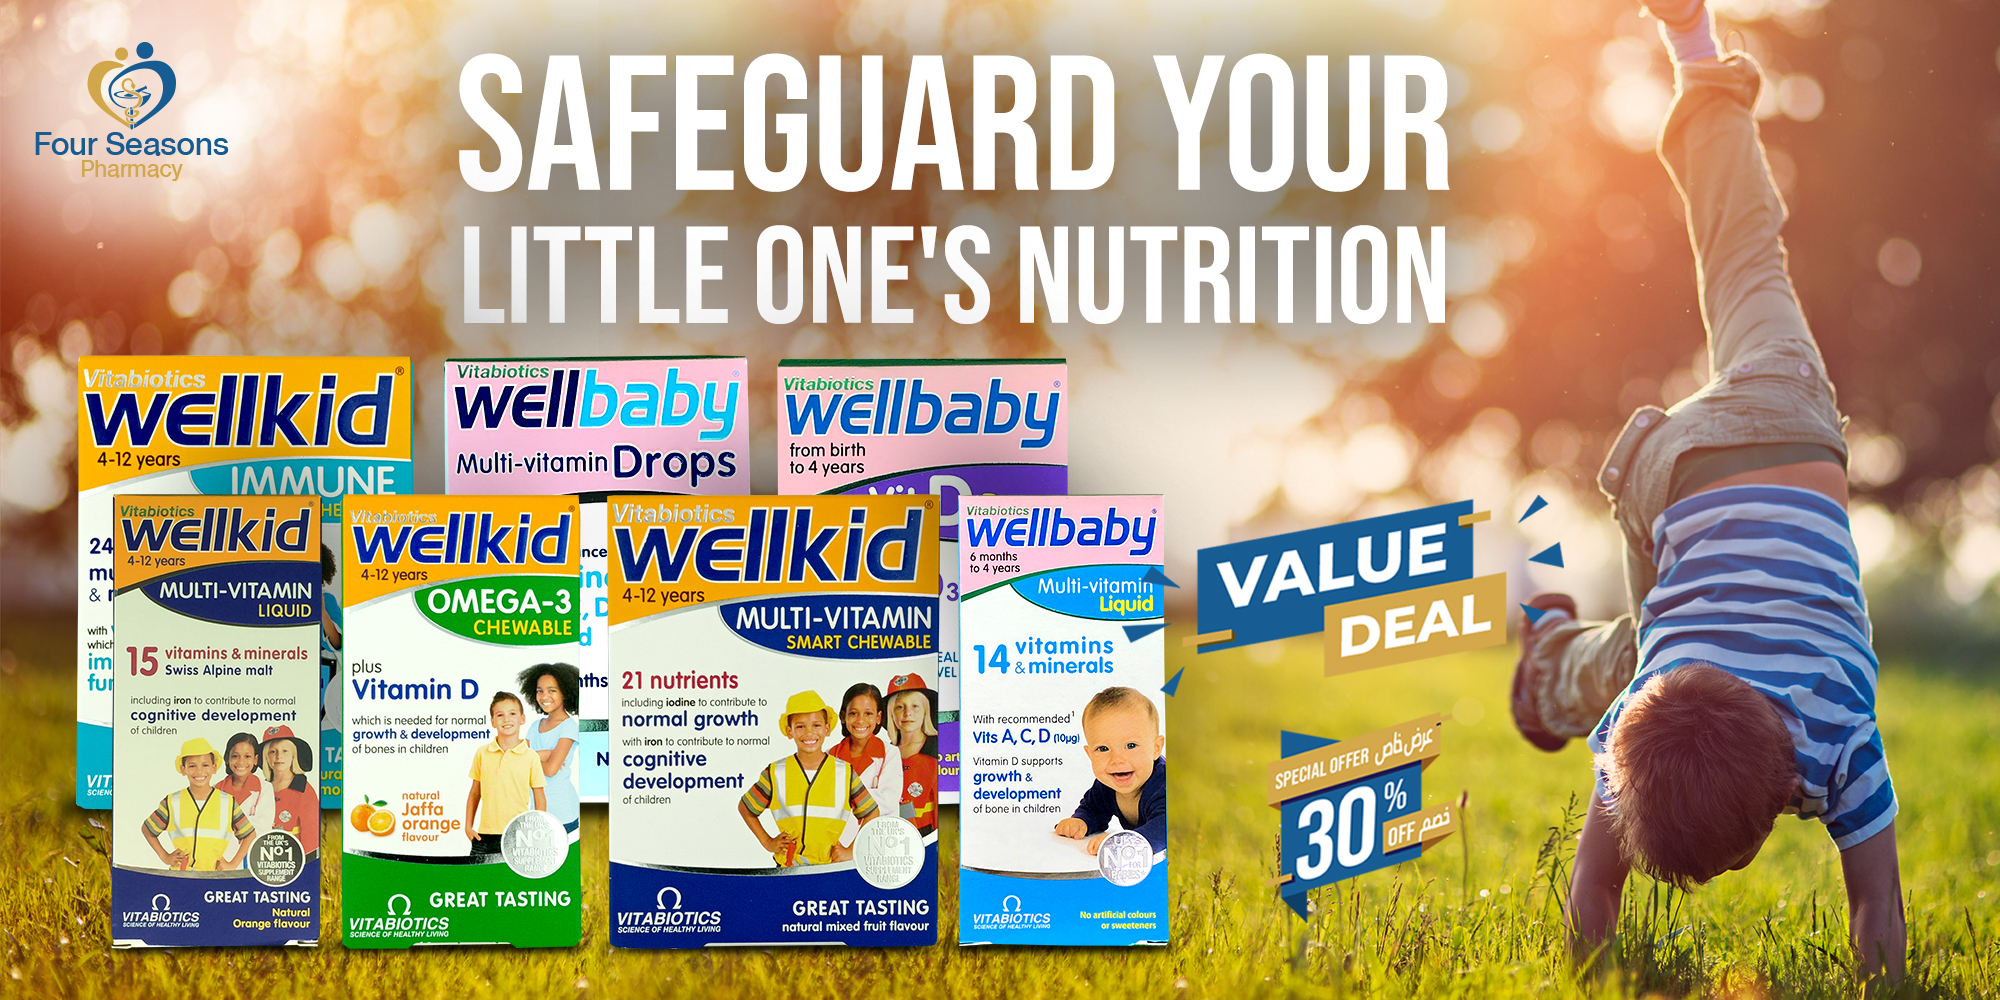 Safeguard your little ones nutrition with Wellkid vitamins